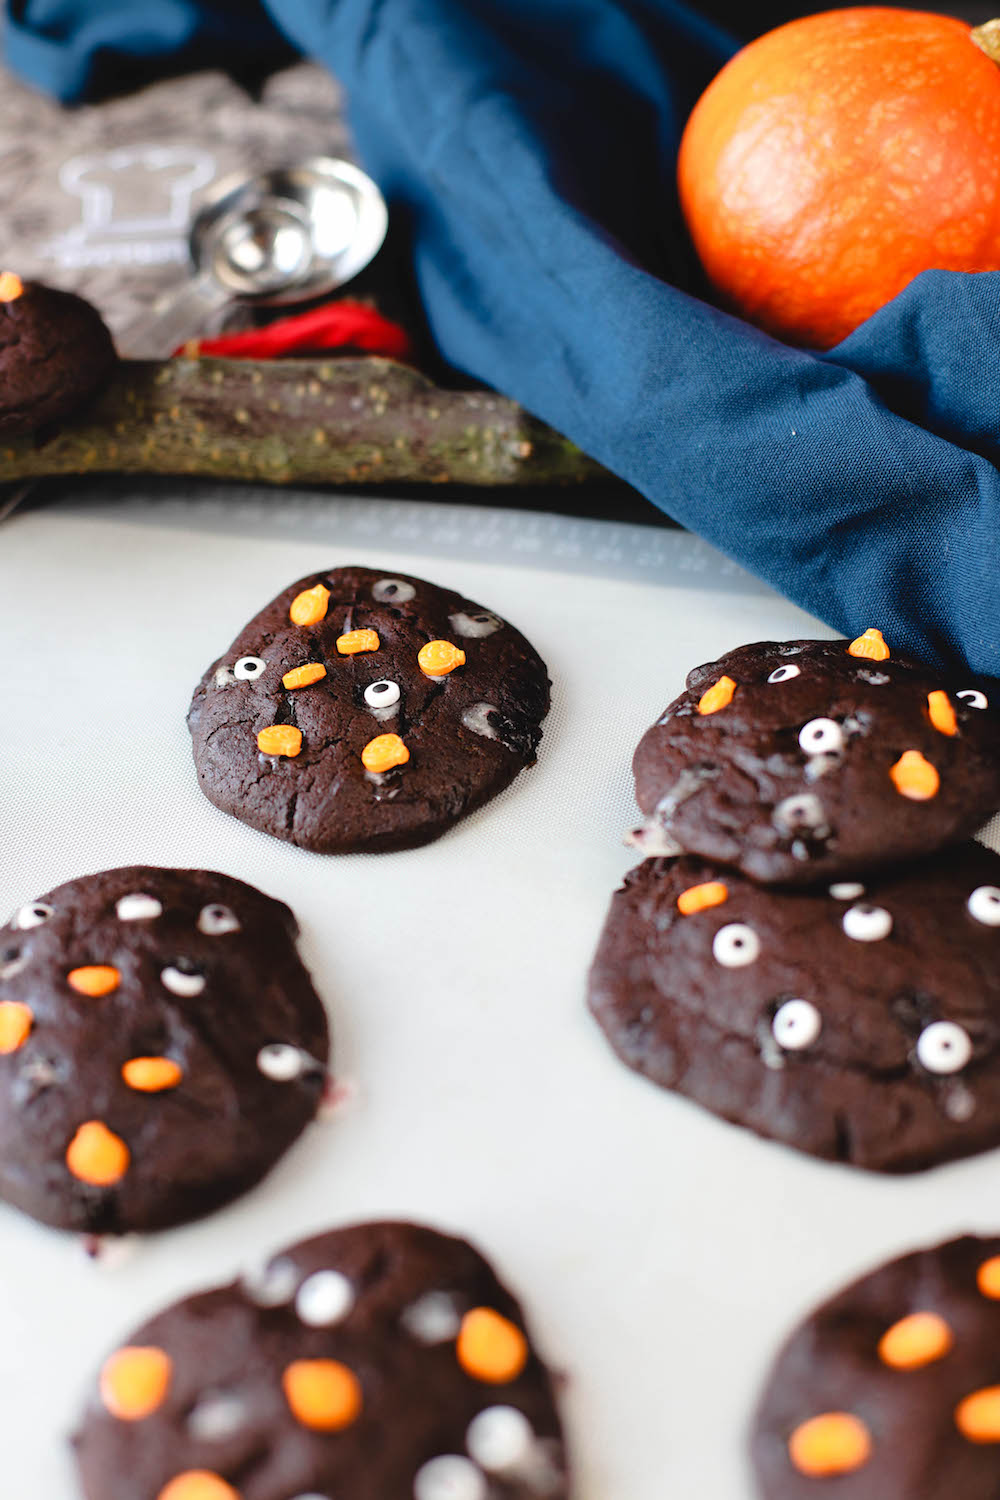 Vegane Schoko Cookies mit Halloween Dekoration auf Backmatte von Backefix